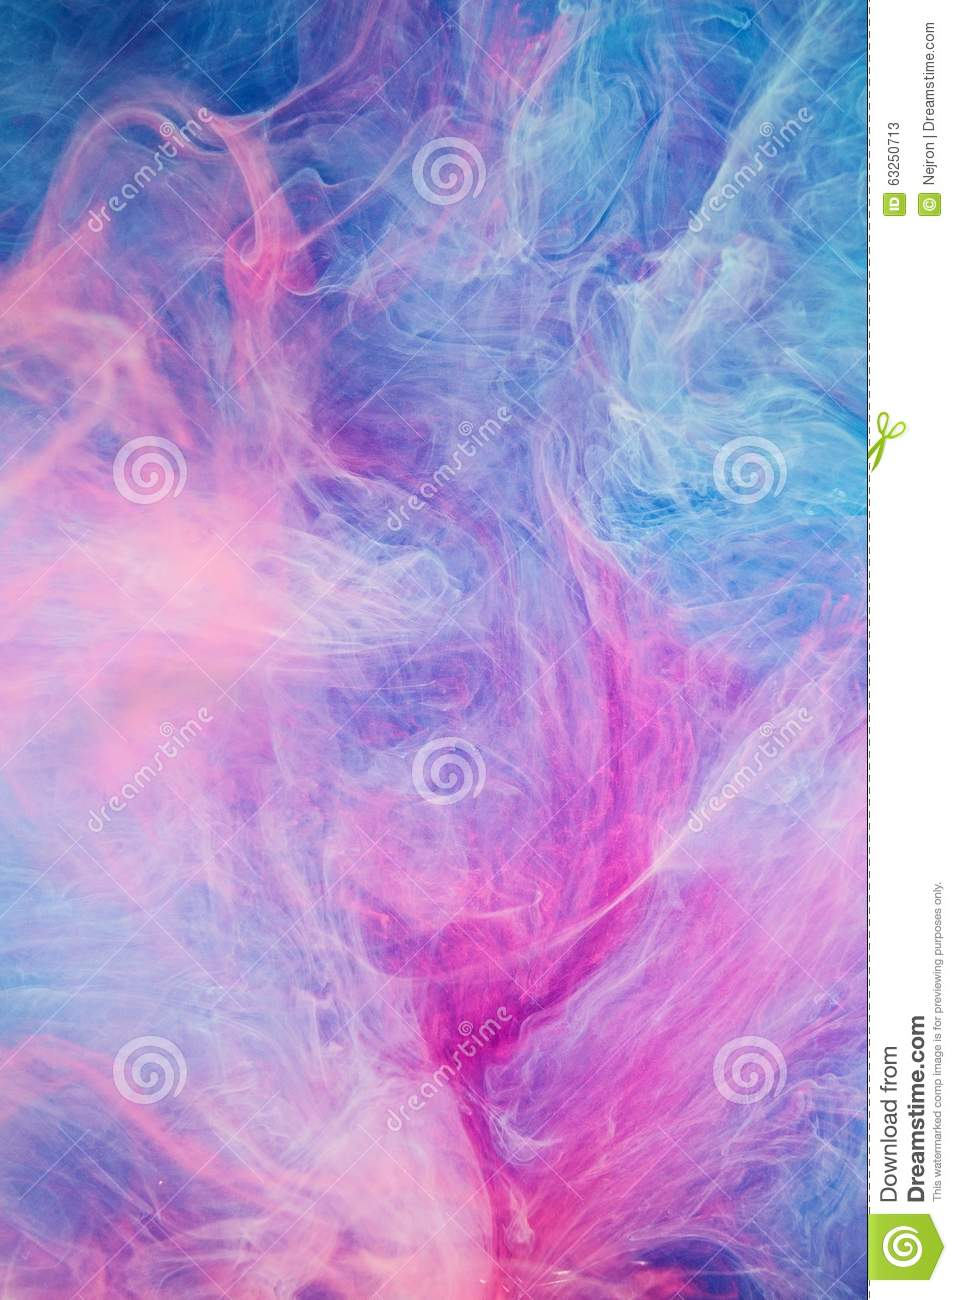 Blue Pink Clouds Of Ink In Liquid